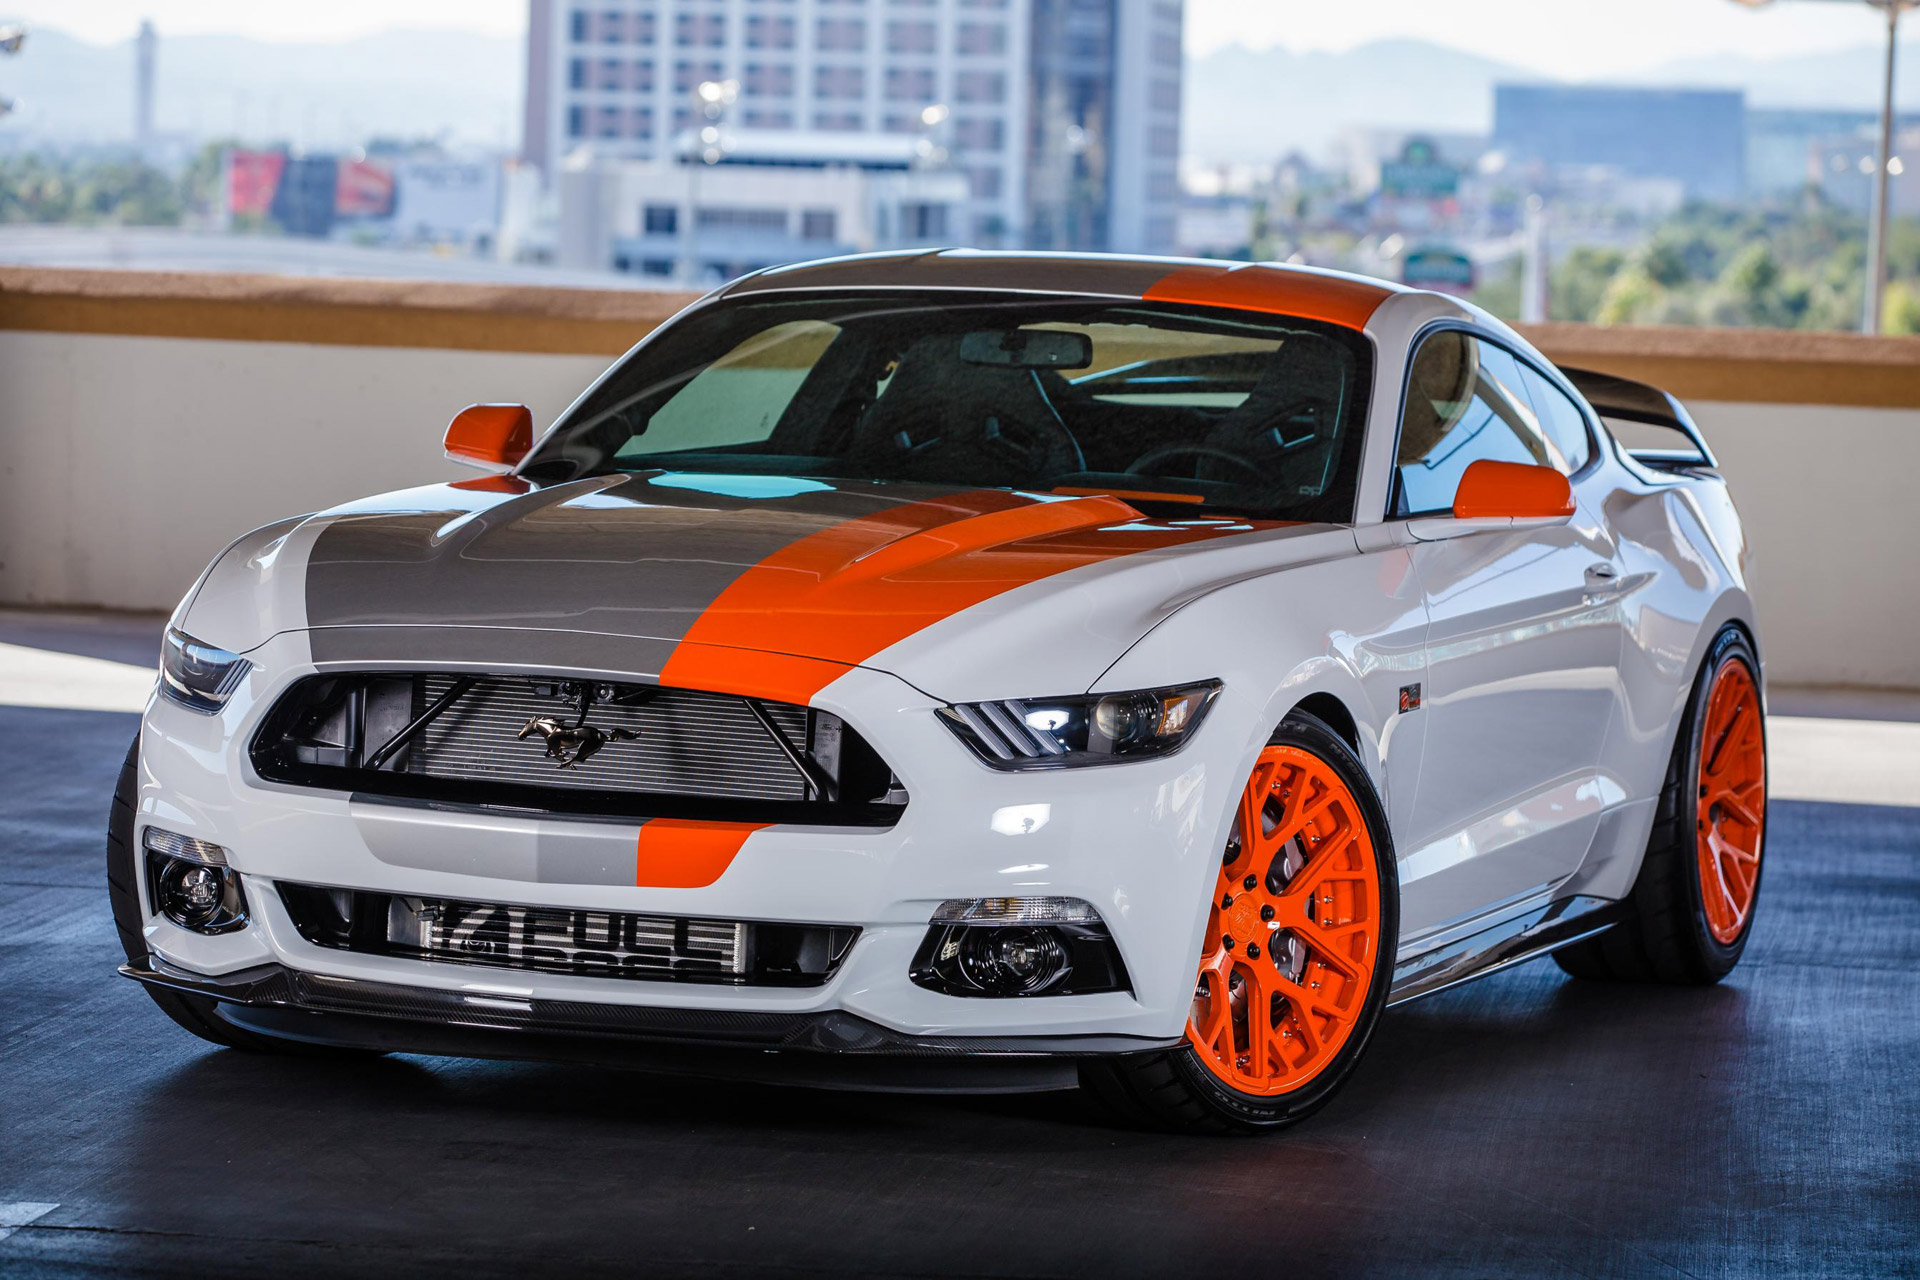 ford mustang named hottest car at 2015 sema show. Black Bedroom Furniture Sets. Home Design Ideas